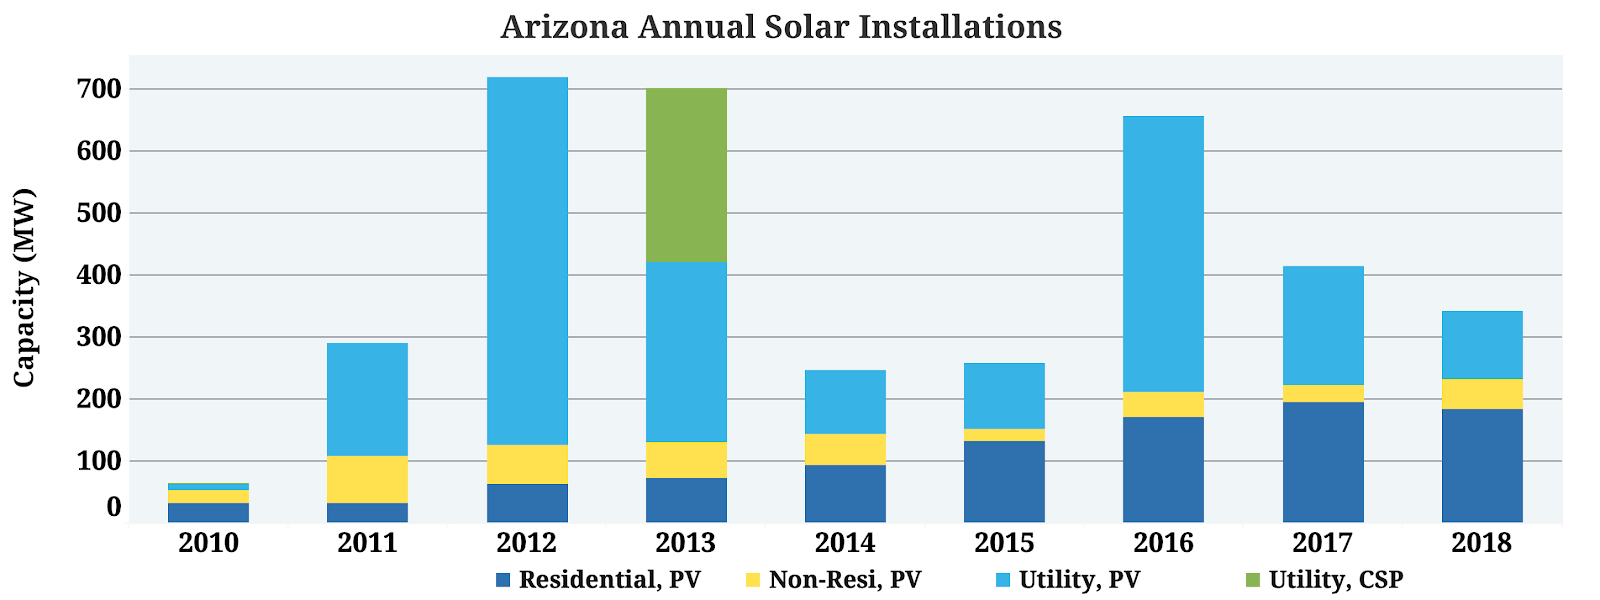 NewEnergyNews: Top Arizona Utility Goes Big On New Energy